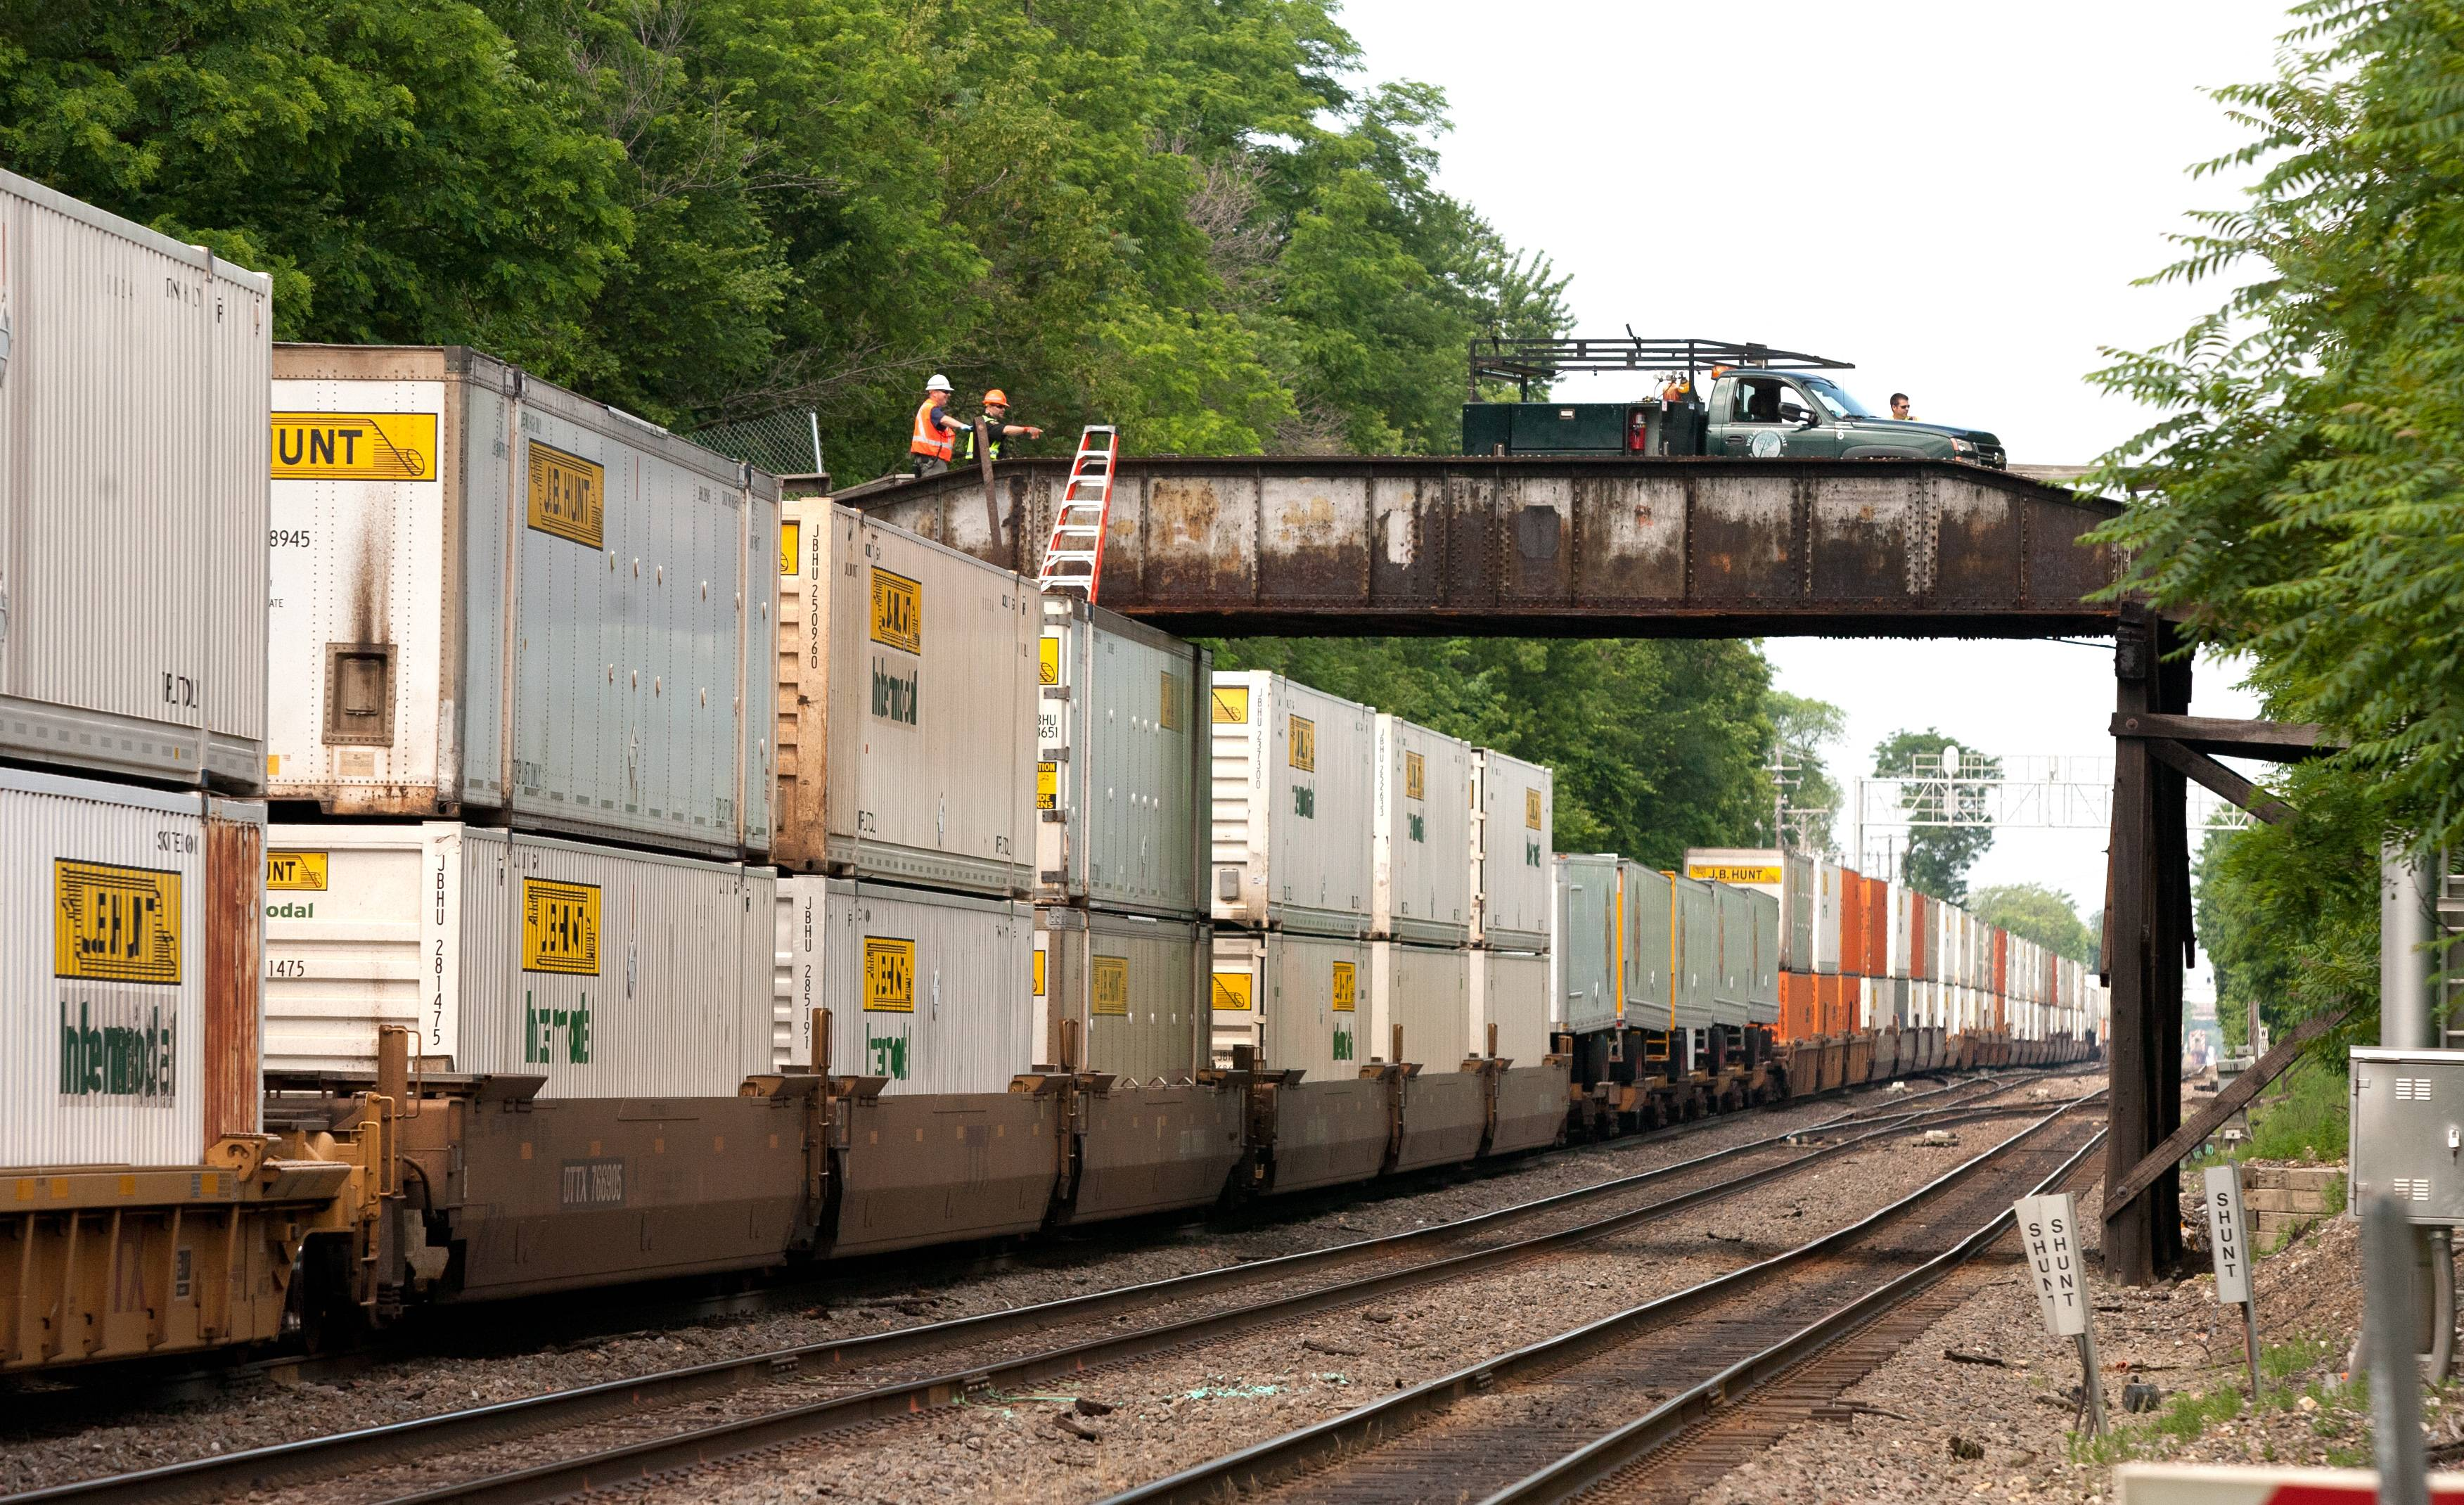 Officials investigate the safety of a bridge in Hinsdale Saturday after a freight train struck a wood beam hanging down from it. The collision disrupted Metra service and caused problems for motorists, but no one was injured.